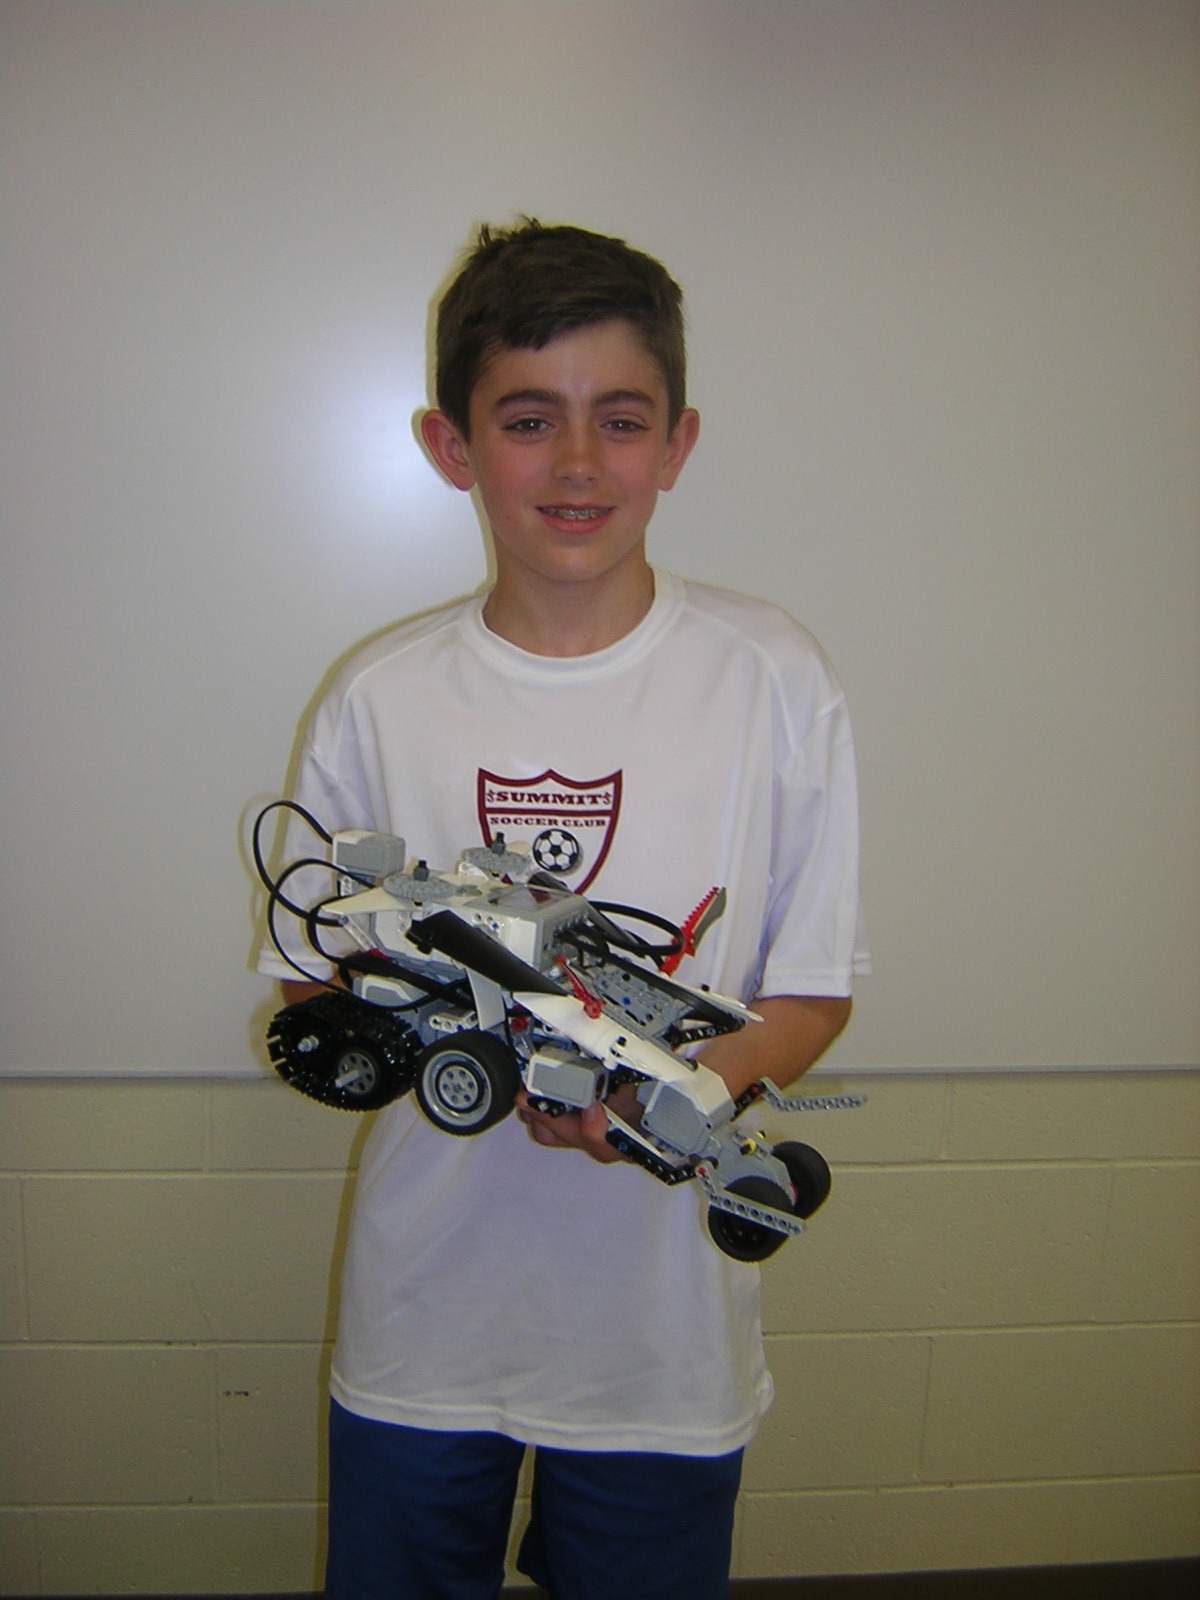 LEGO Robotics at Franklin School Challenges Young Engineers